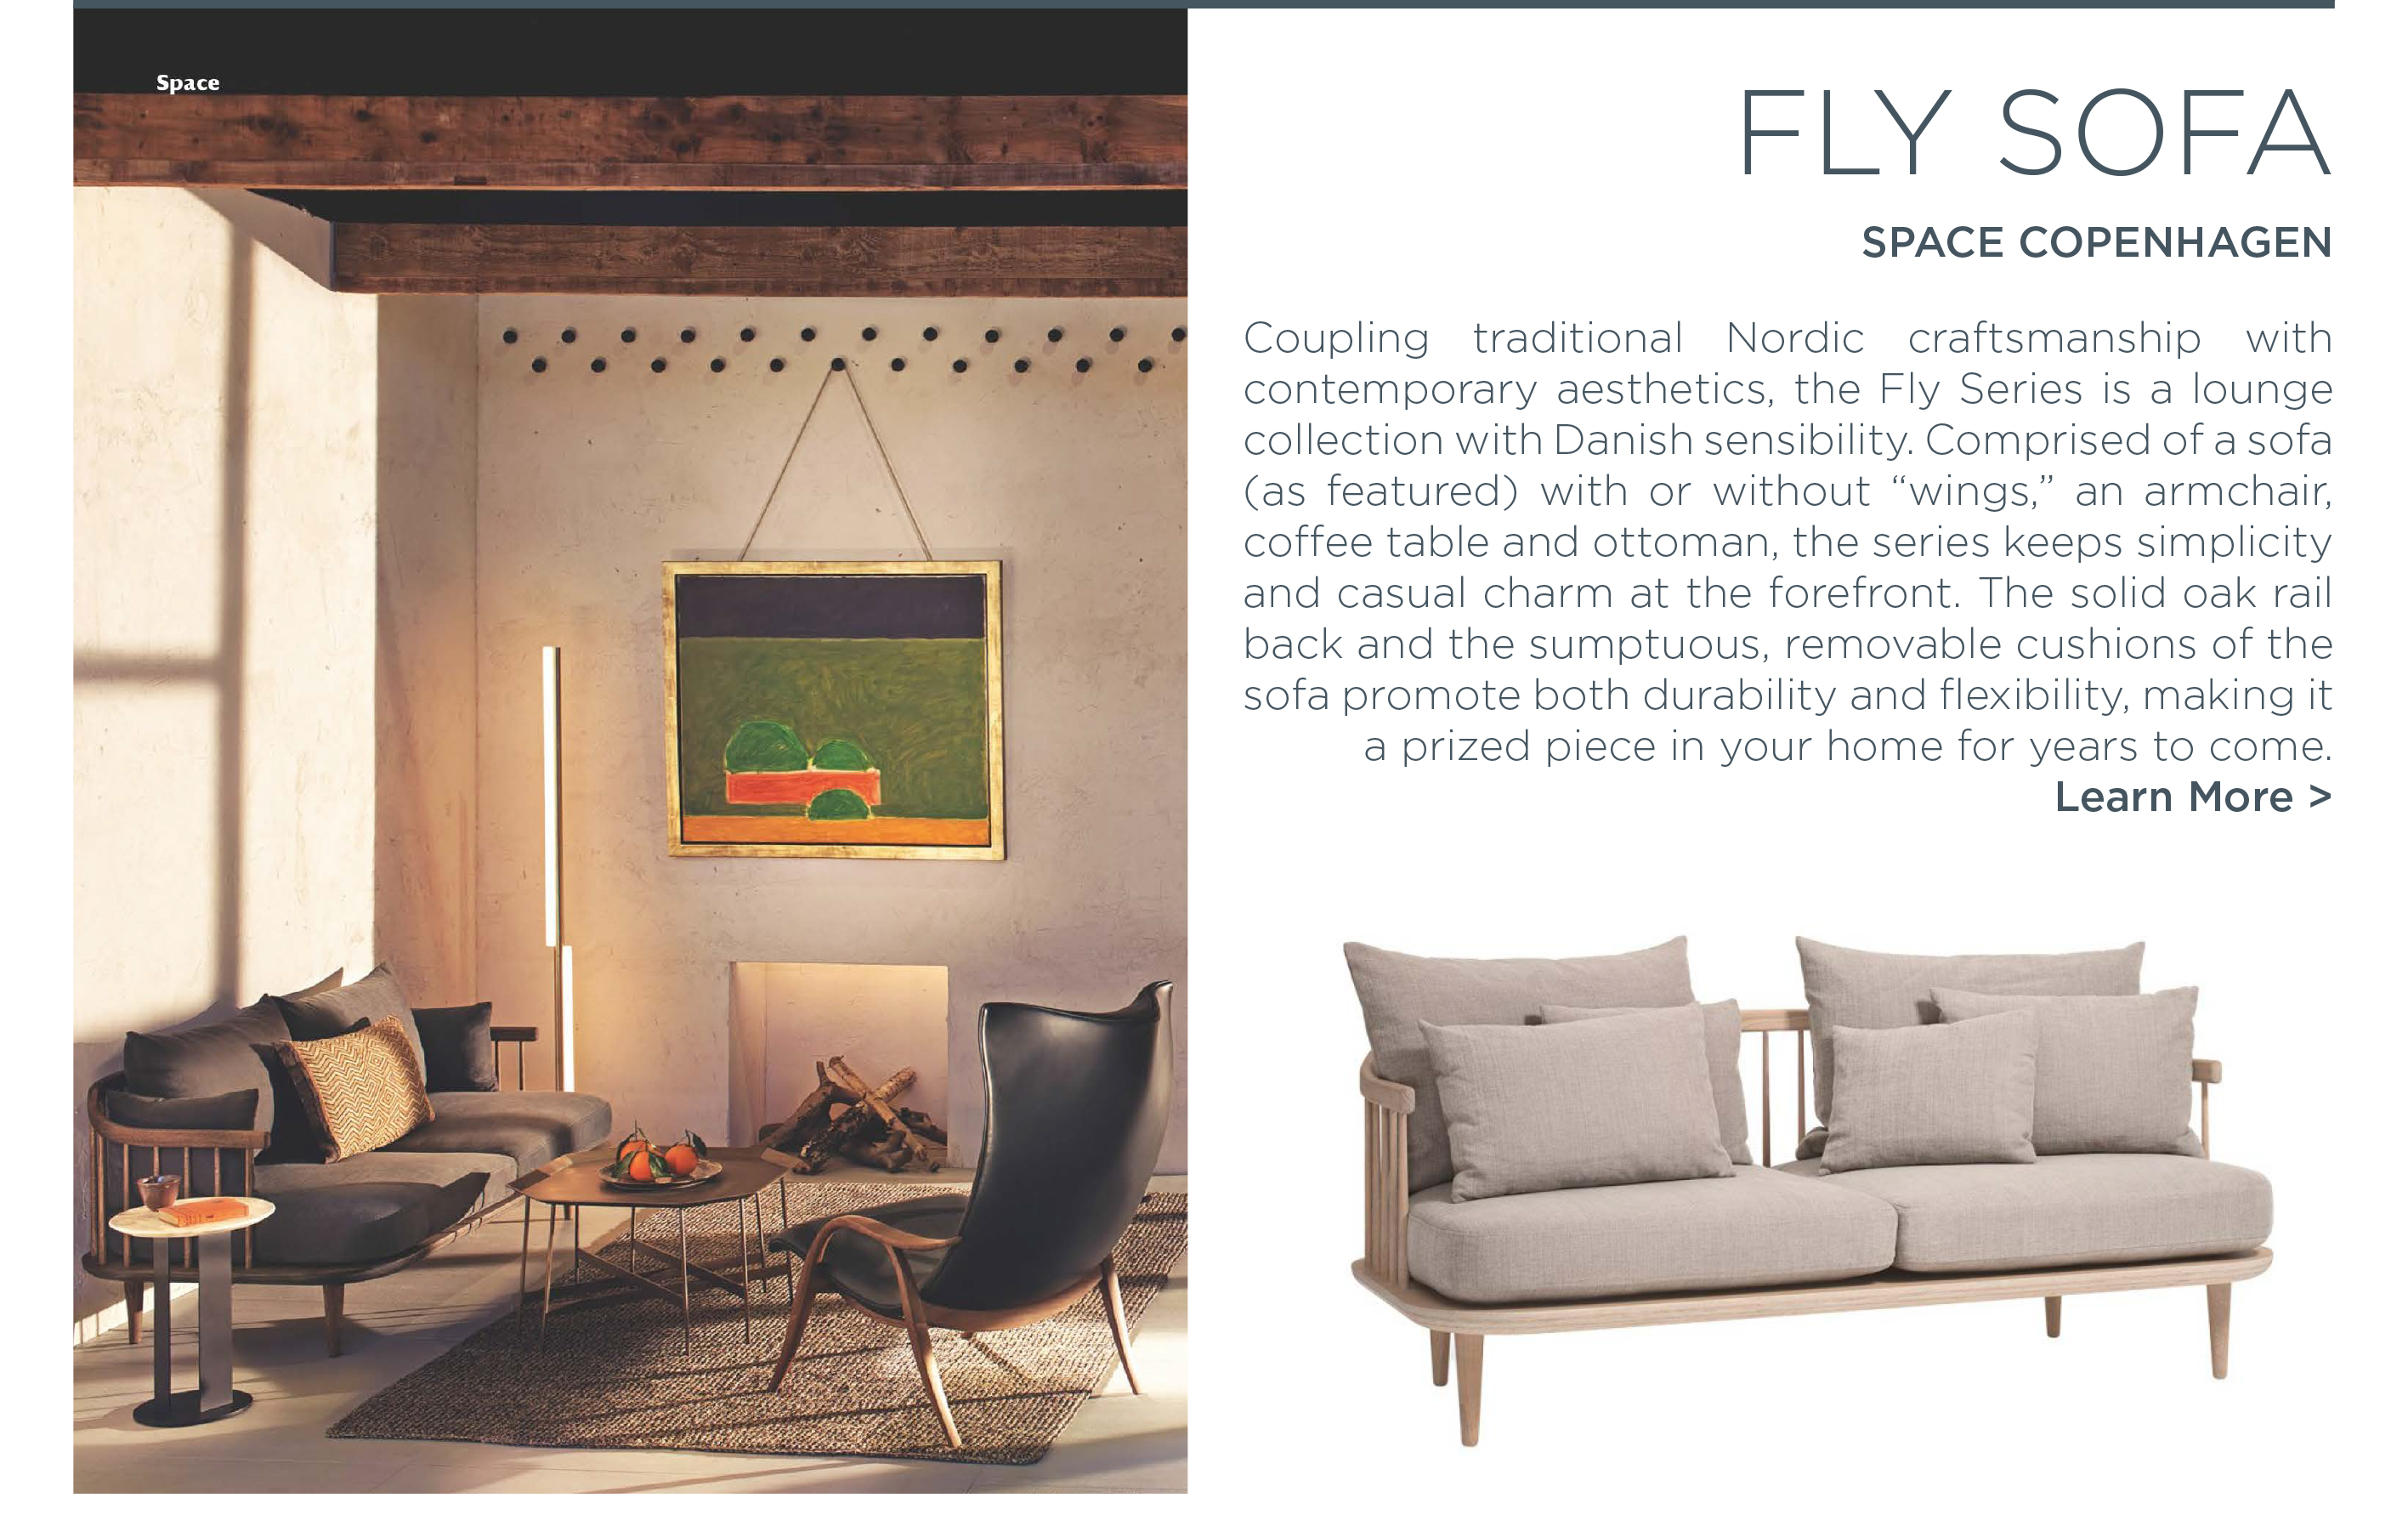 fly sofa space copehagen antradition danish designer furniture suite ny new york